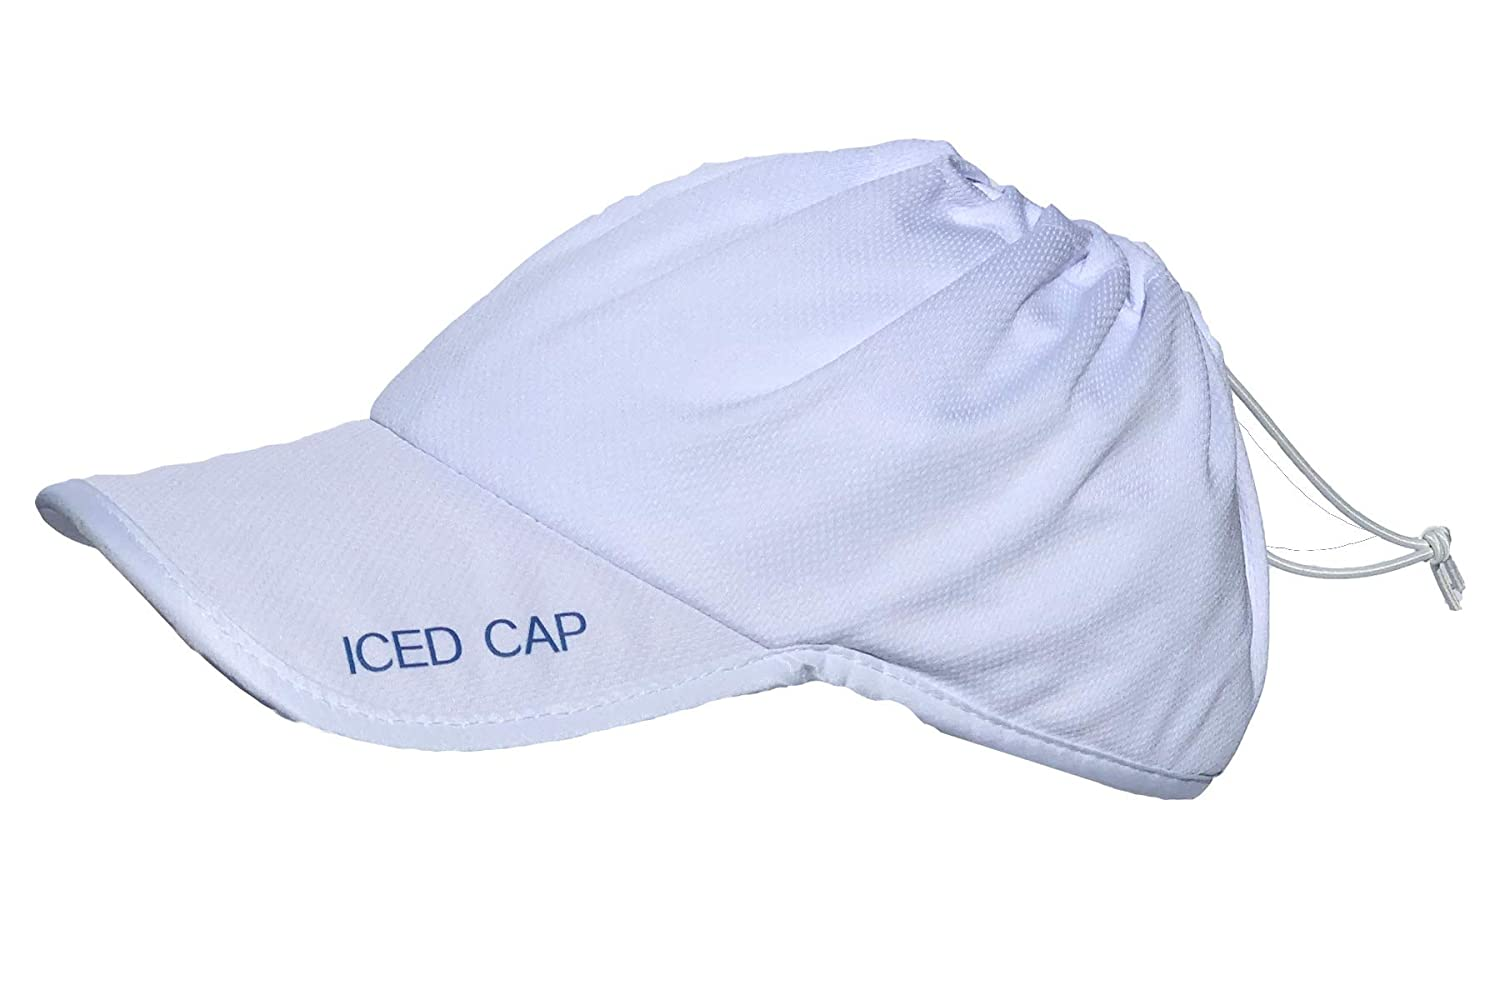 ICED Cap- Cooling Hat For Ice